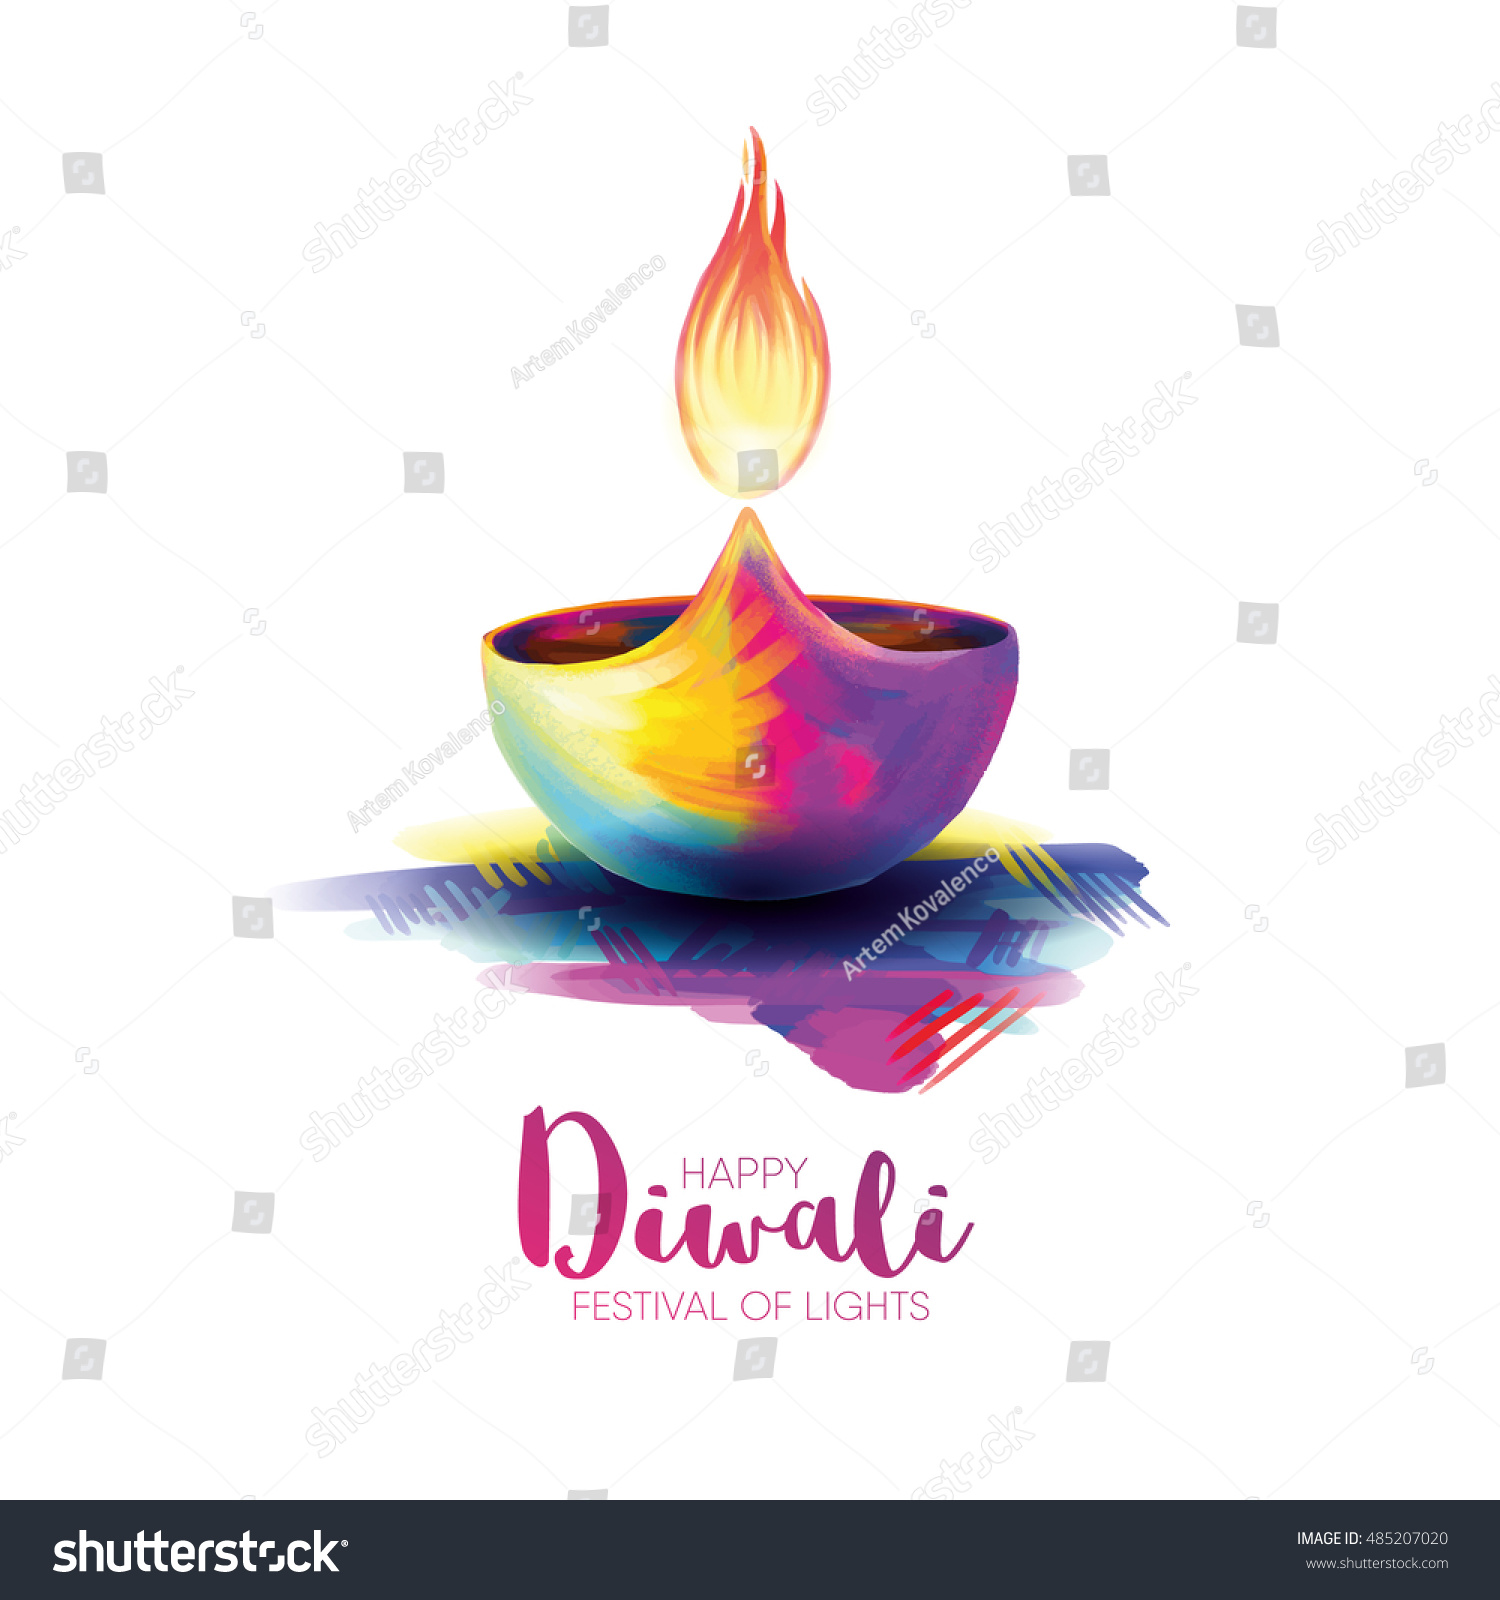 Vector Illustration On The Theme Of Traditional Celebration Happy Diwali Deepavali Light And